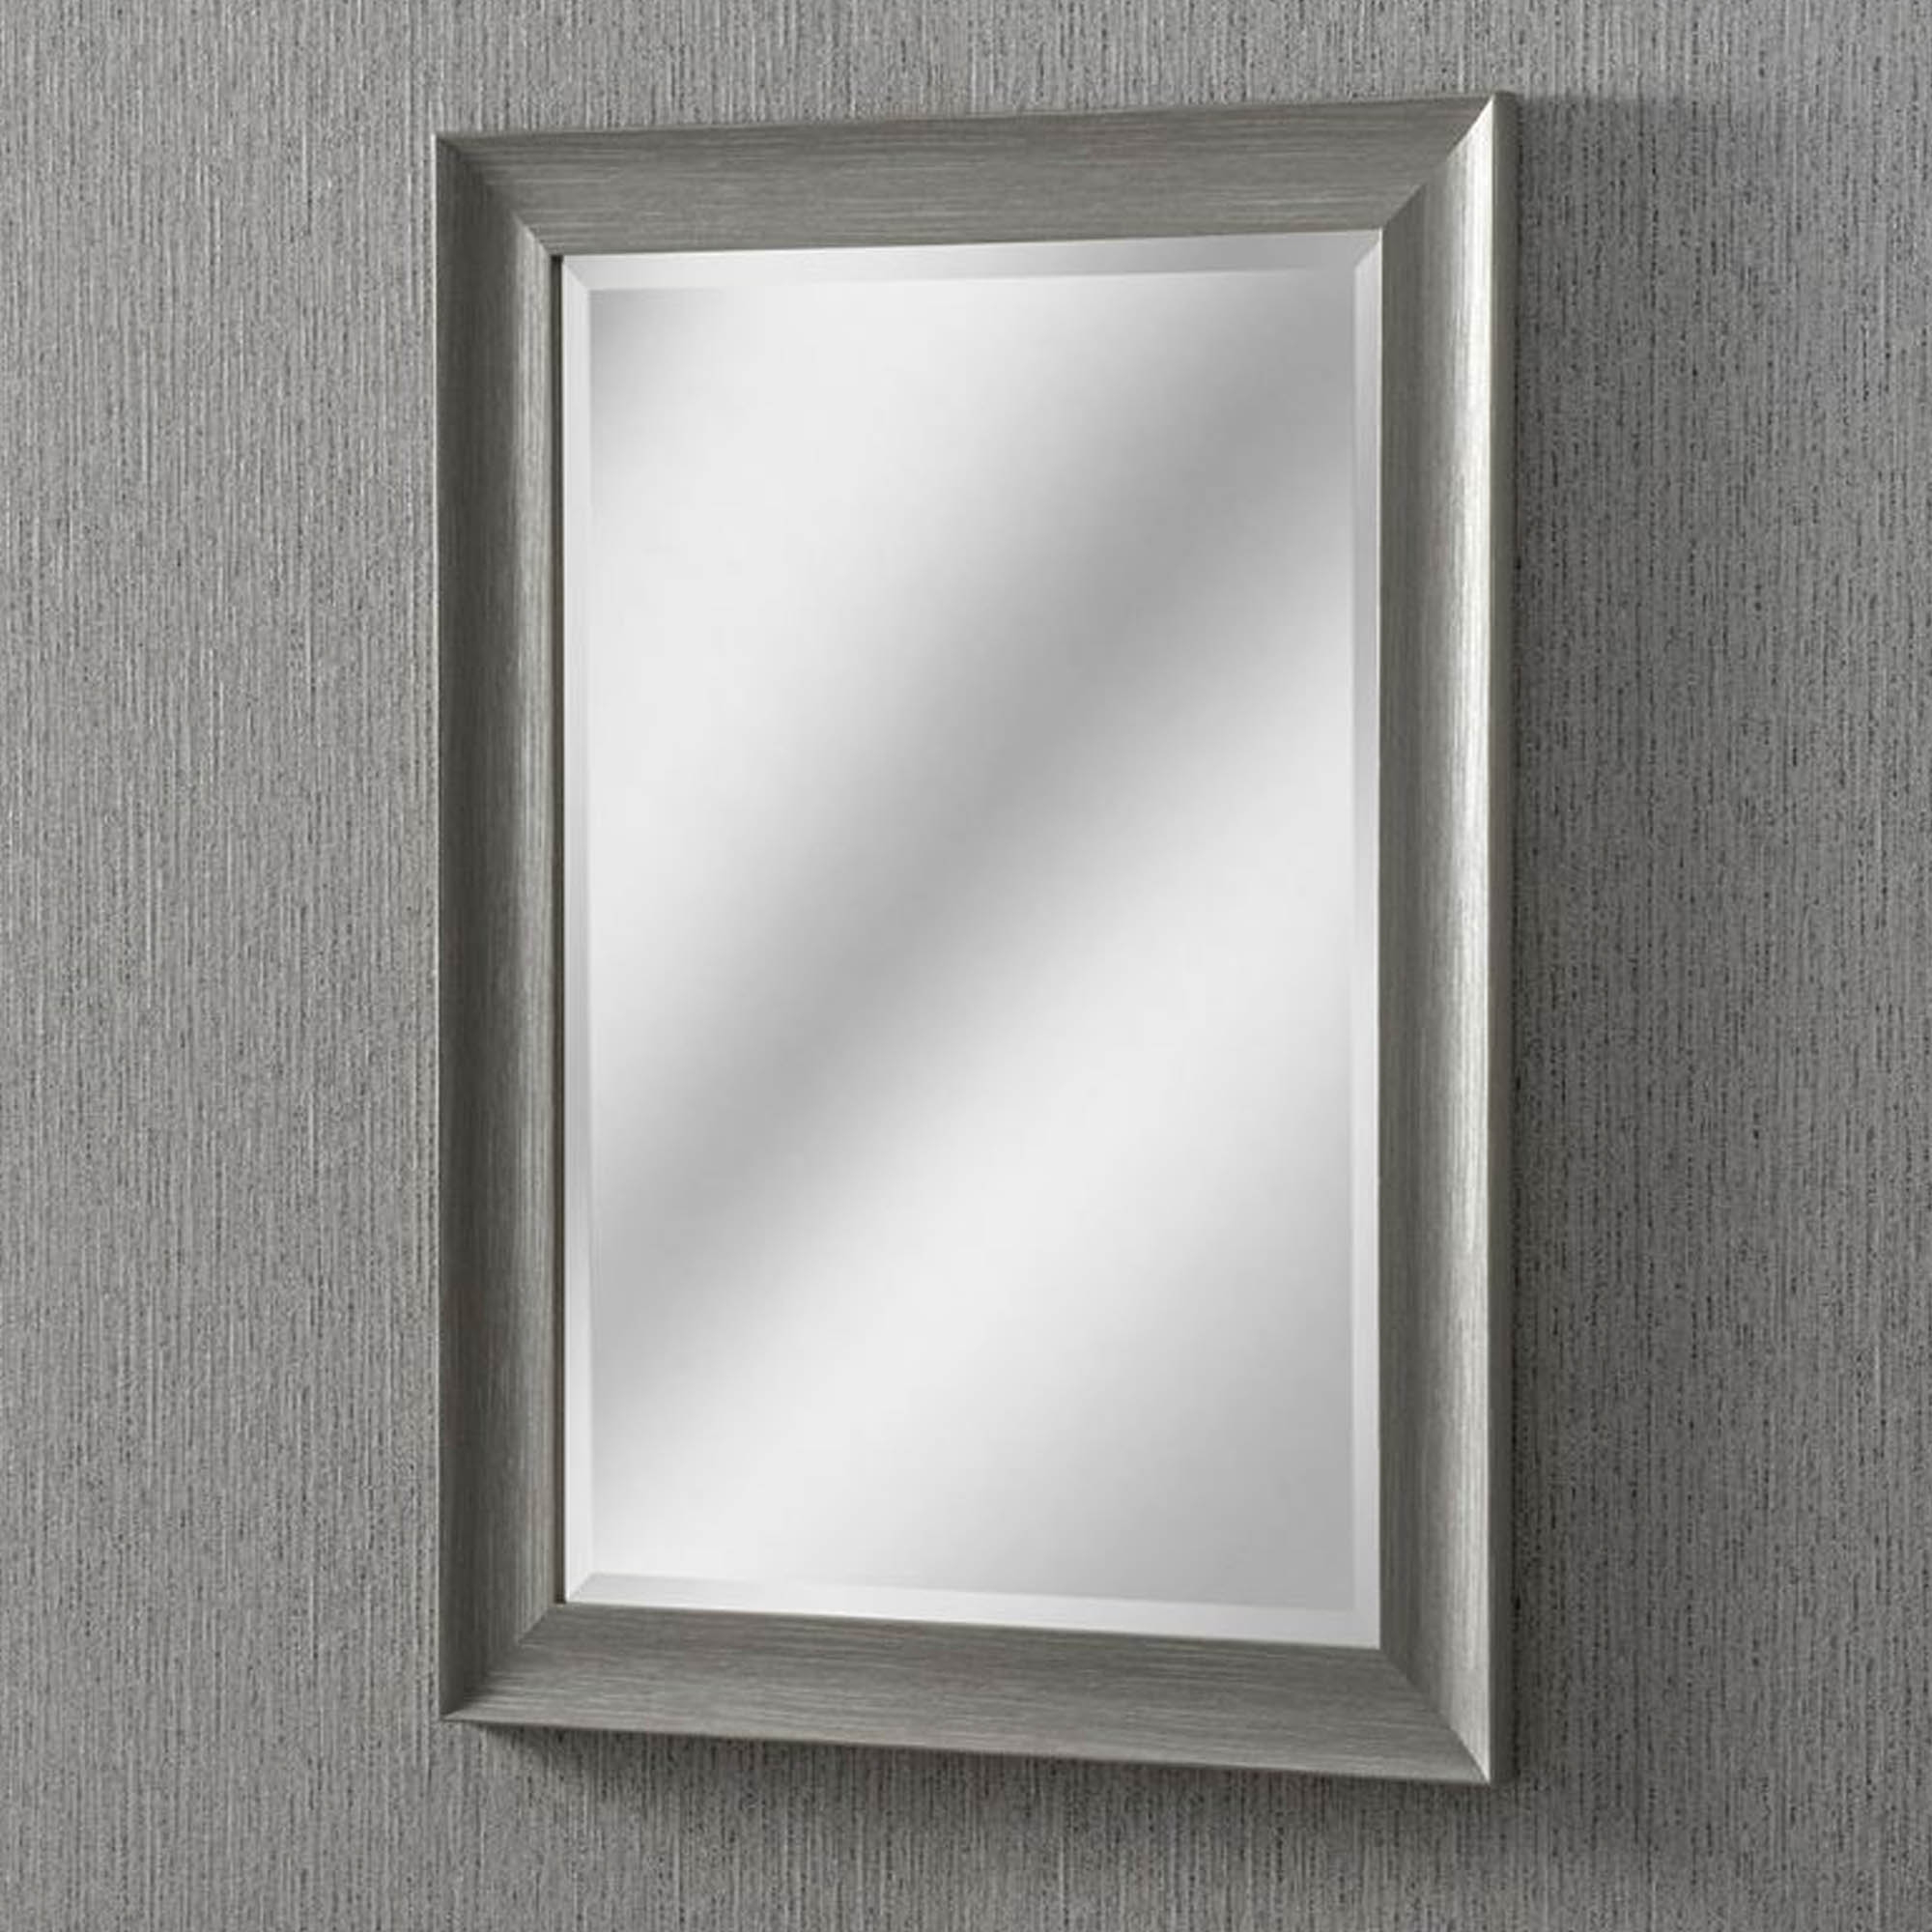 Rectangular Grey Modern & Contemporary Wall Mirror With Regard To Current Modern Rectangle Wall Mirrors (View 18 of 20)